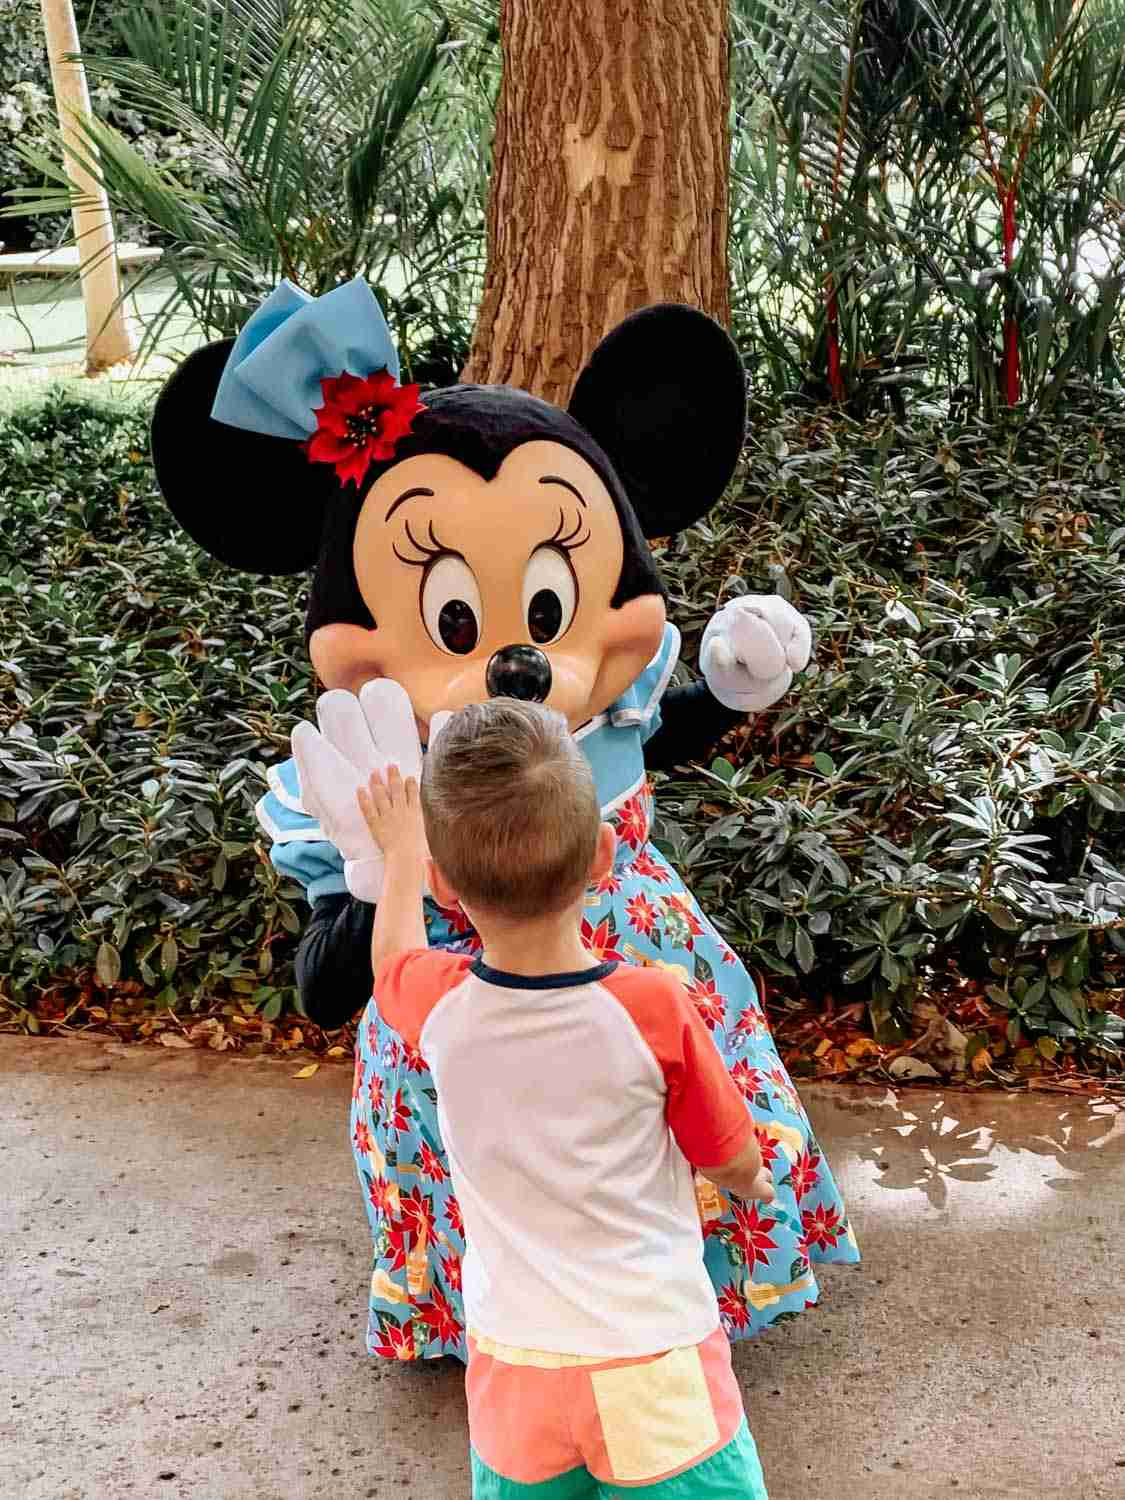 Little boy giving Minnie Mouse a high five at Aulani in Hawaii